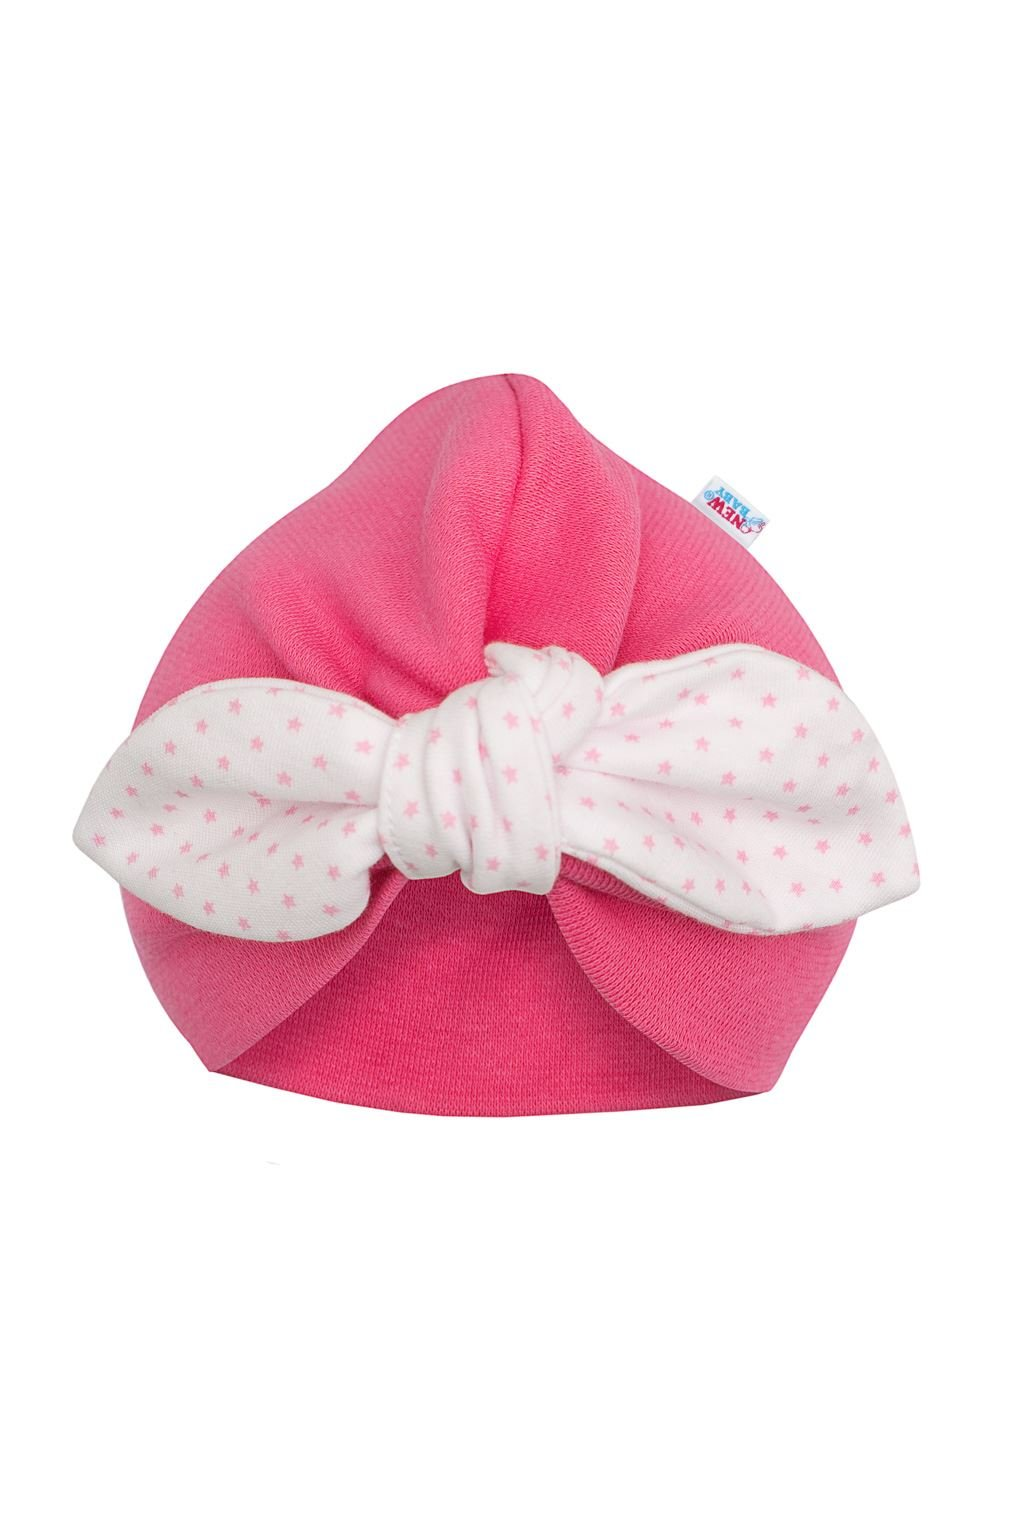 Dievčenská čiapočka turban New Baby For Girls dots